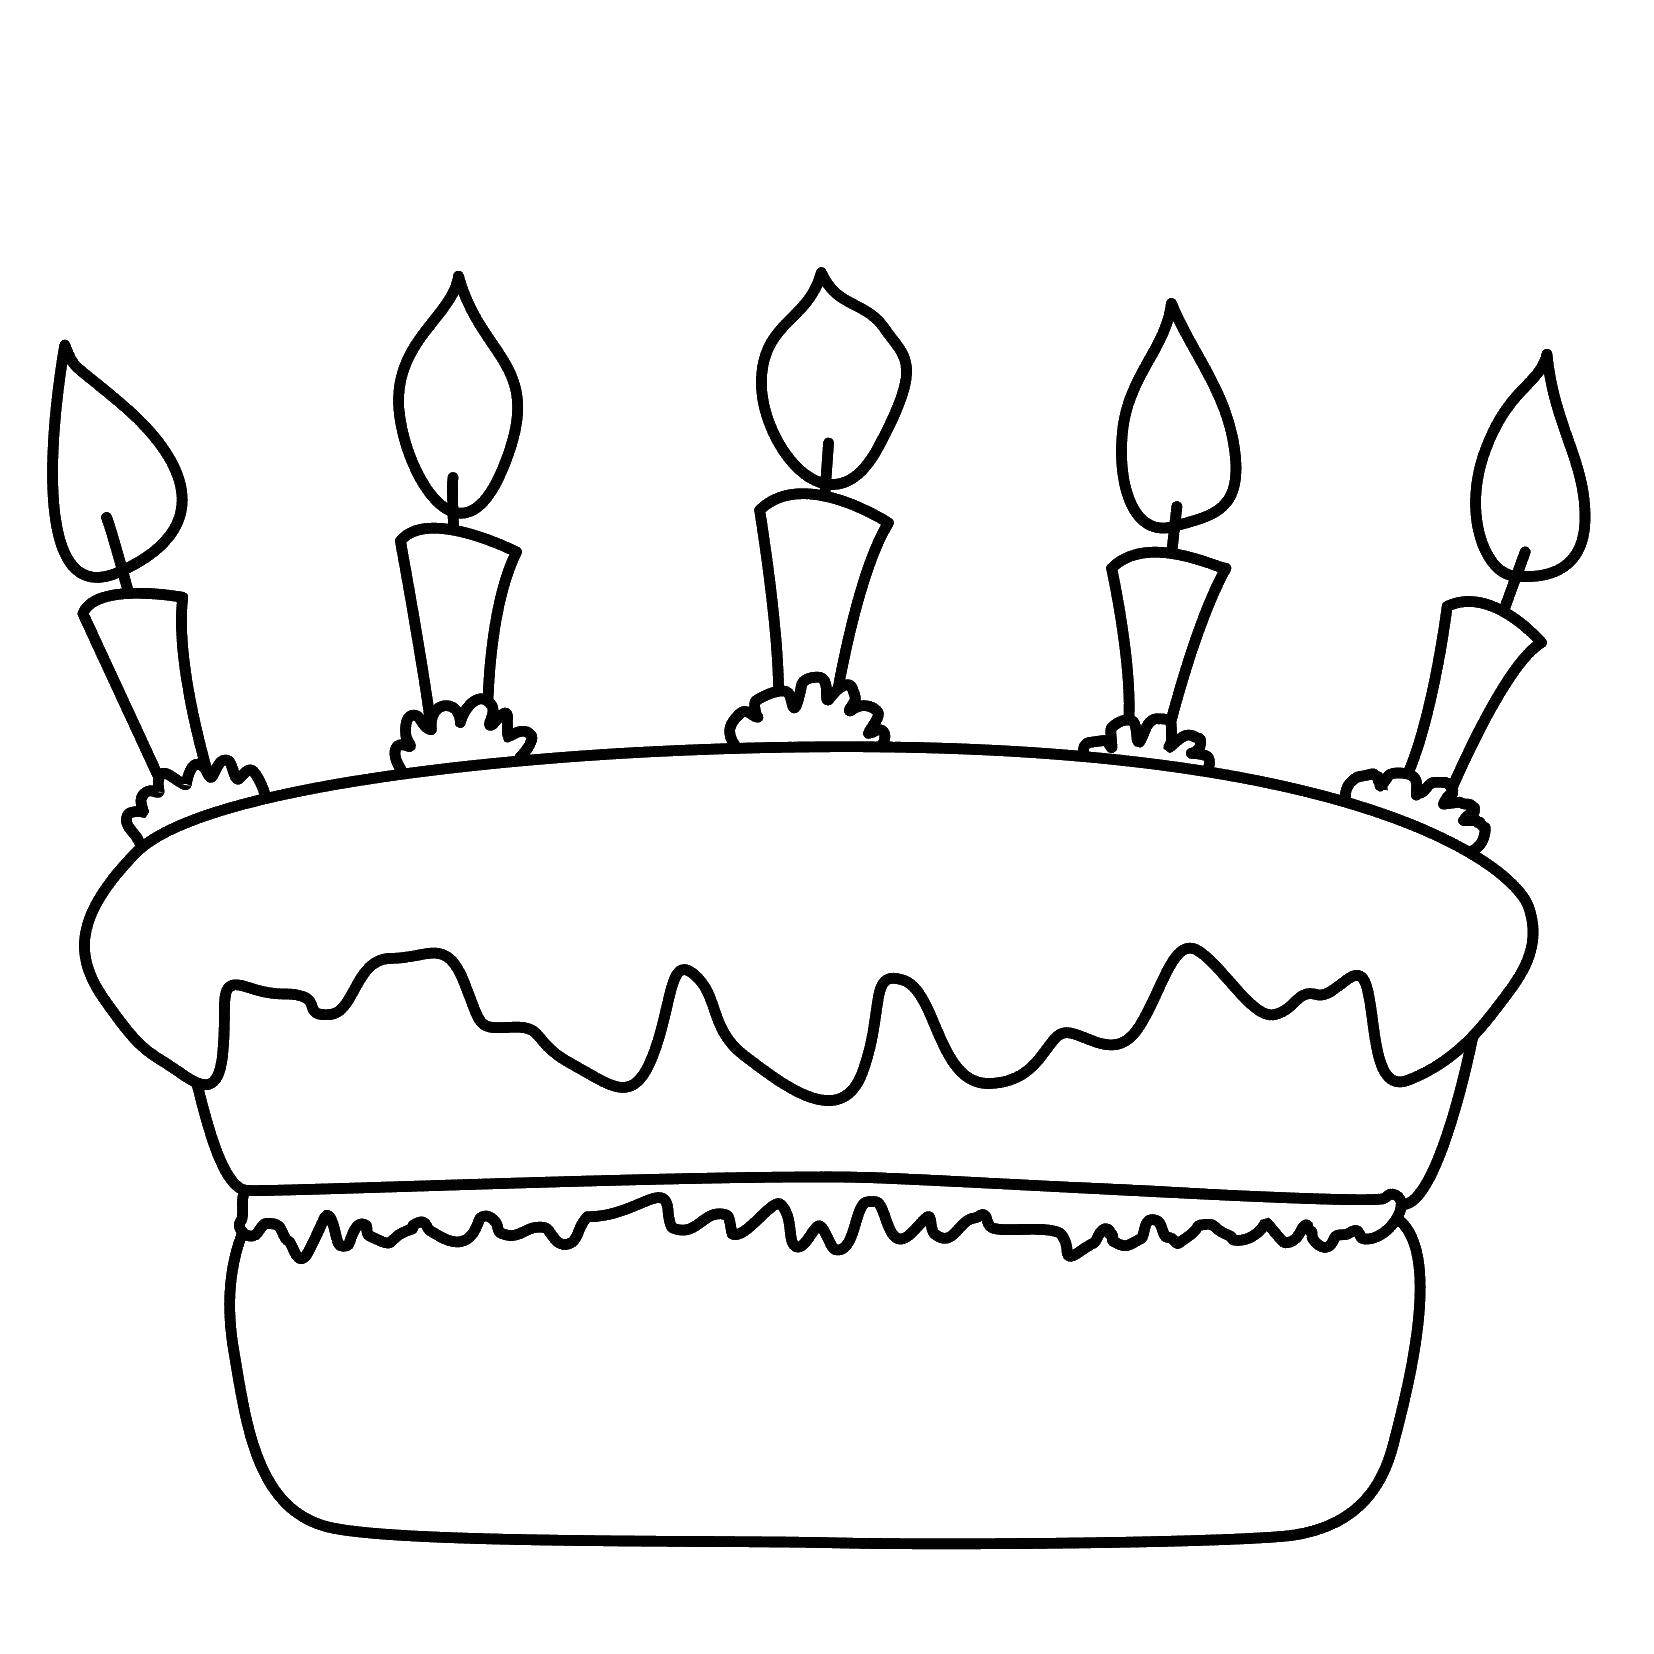 Coloring sheet cakes Download tree, new year.  Print ,new year,